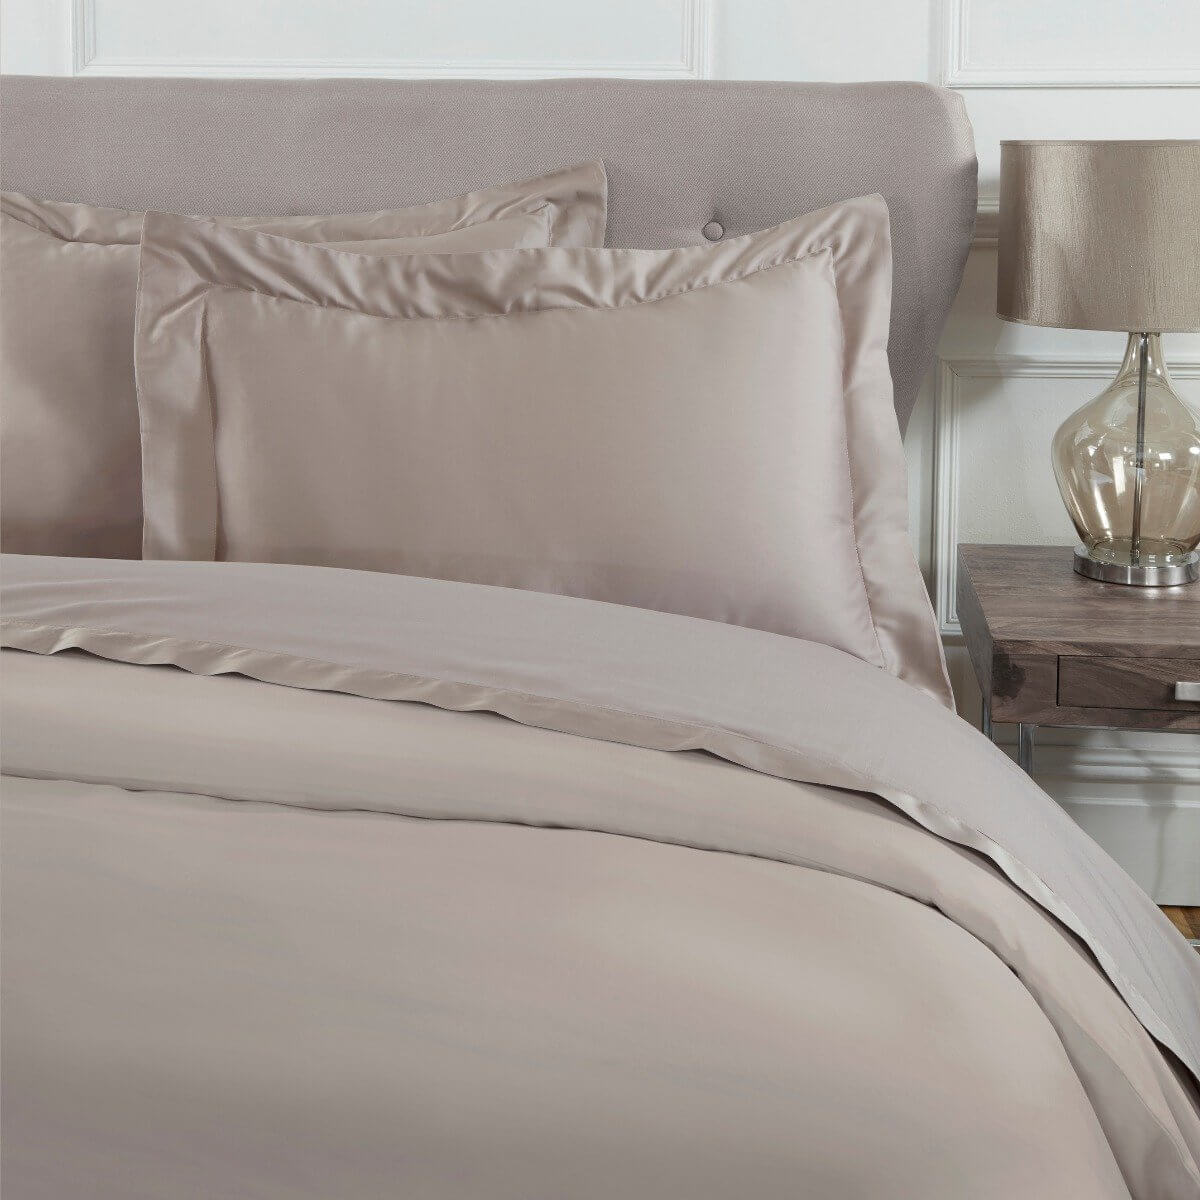 Sleepdown Pillowcase 100% Cotton Sateen Pack of Two Oxford Pillow Cover Set Anti-Allergy 300 Thread Count Luxury Bed Linen - Mink - 50 x 75cm